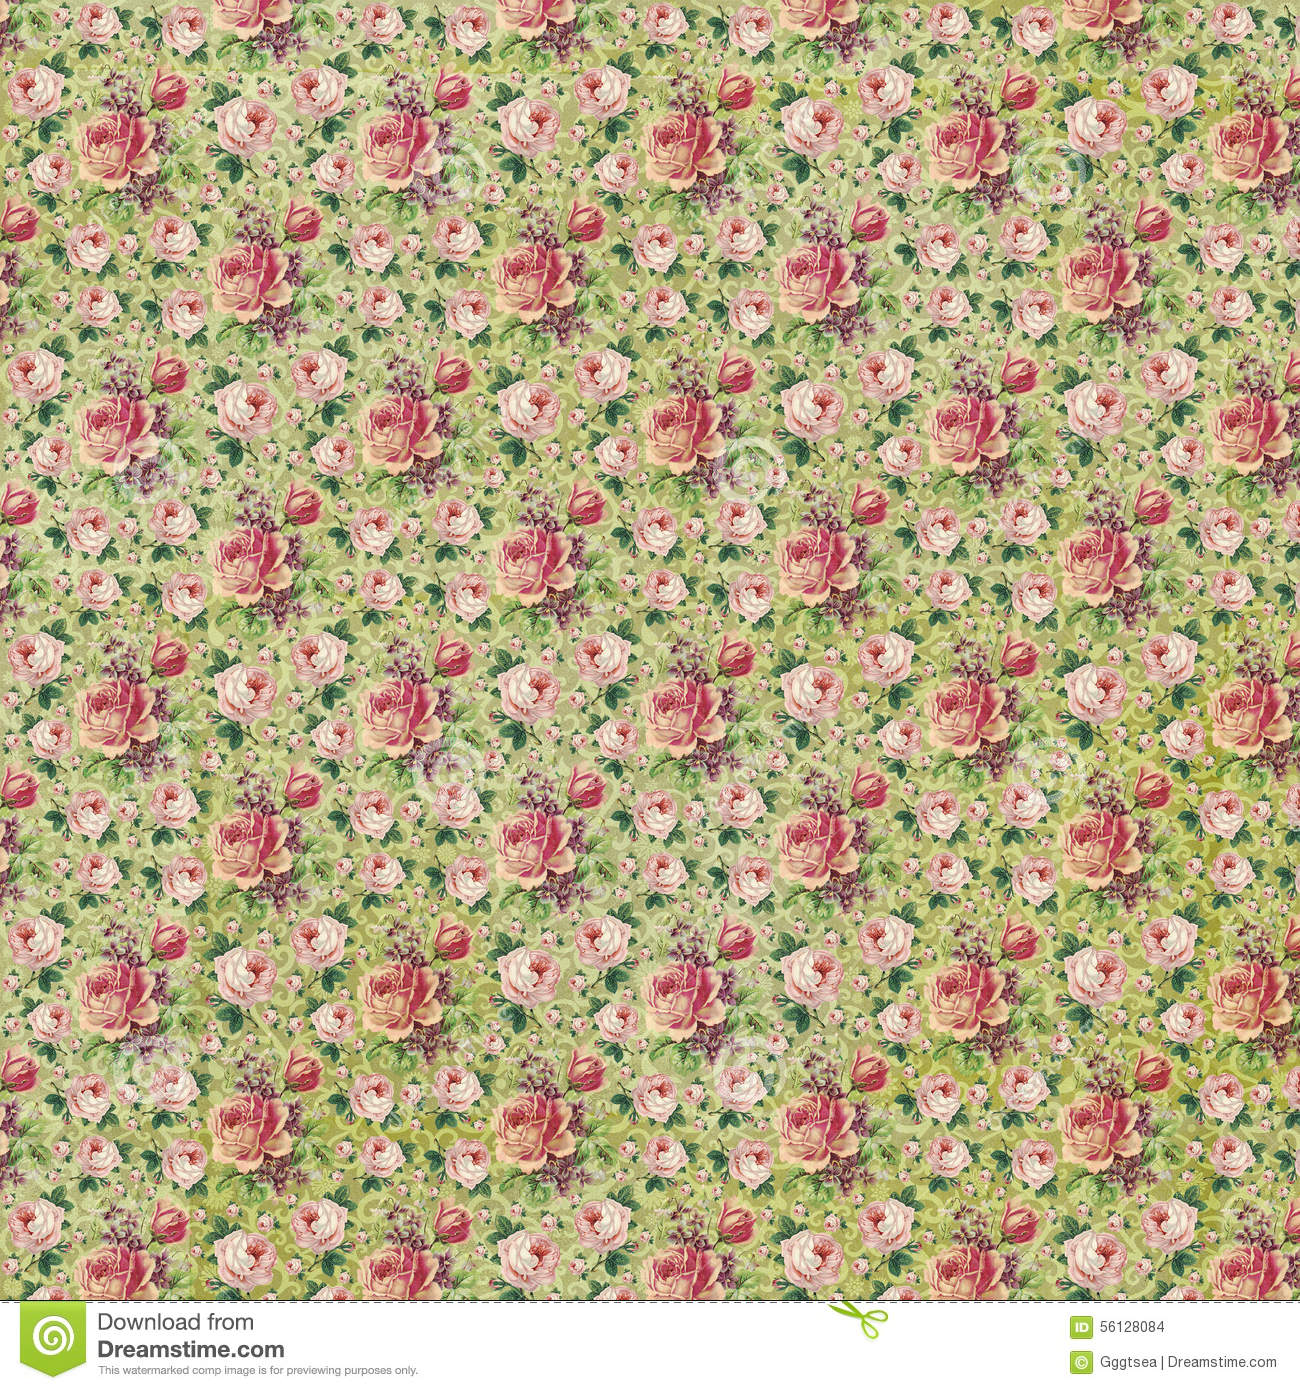 Vintage Style Roses Floral Paper Texture Stock Photo Image Of